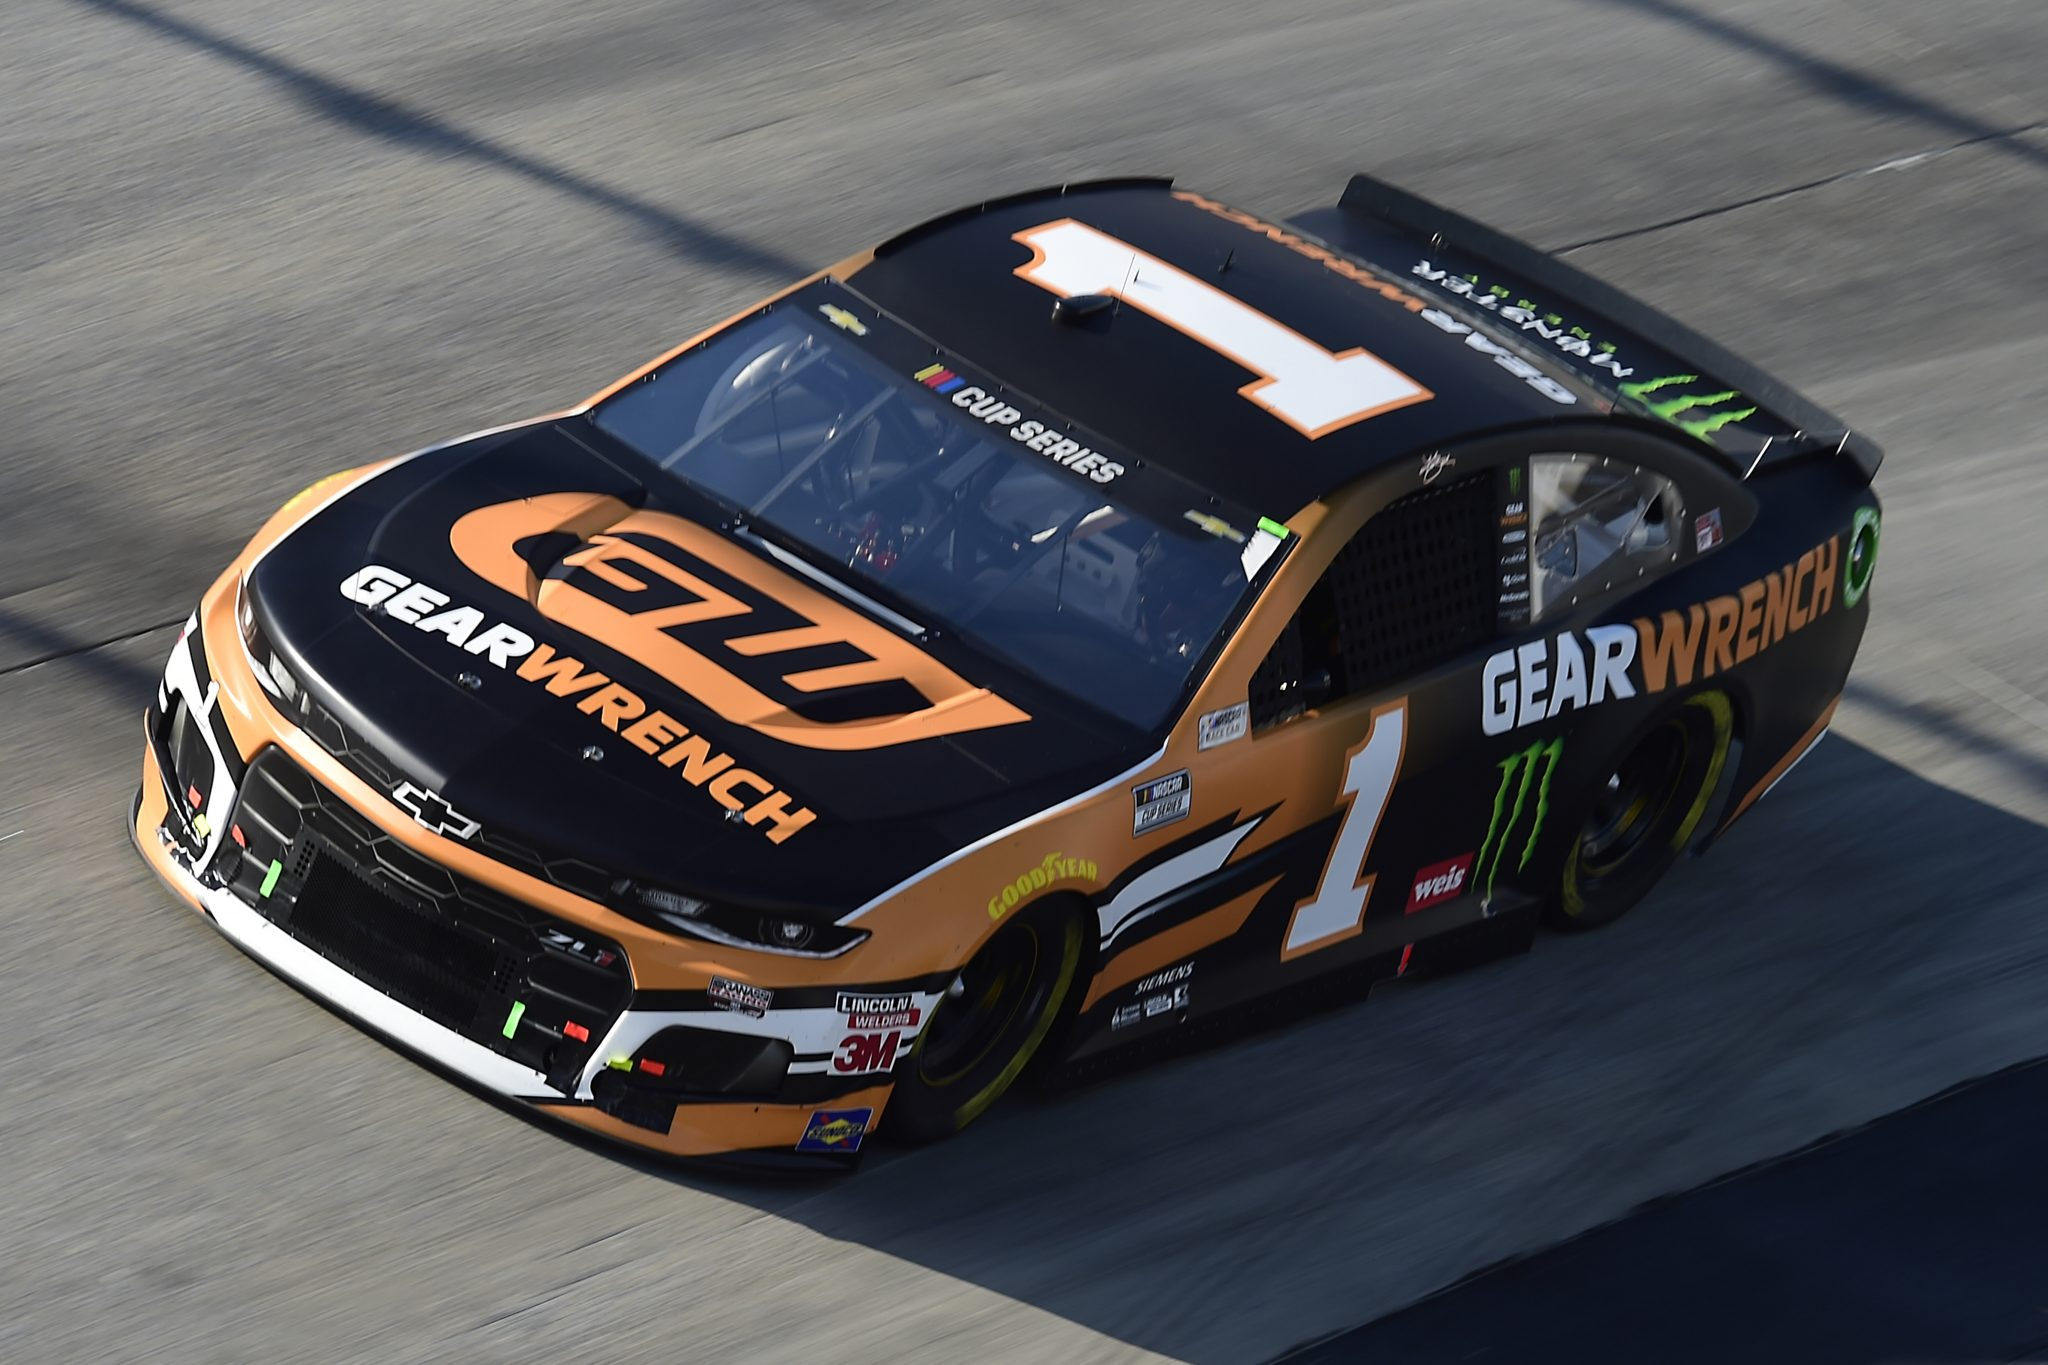 DOVER, DELAWARE - AUGUST 23: Kurt Busch, driver of the #1 GEARWRENCH Chevrolet, drives during the NASCAR Cup Series Drydene 311 at Dover International Speedway on August 23, 2020 in Dover, Delaware. (Photo by Jared C. Tilton/Getty Images) | Getty Images